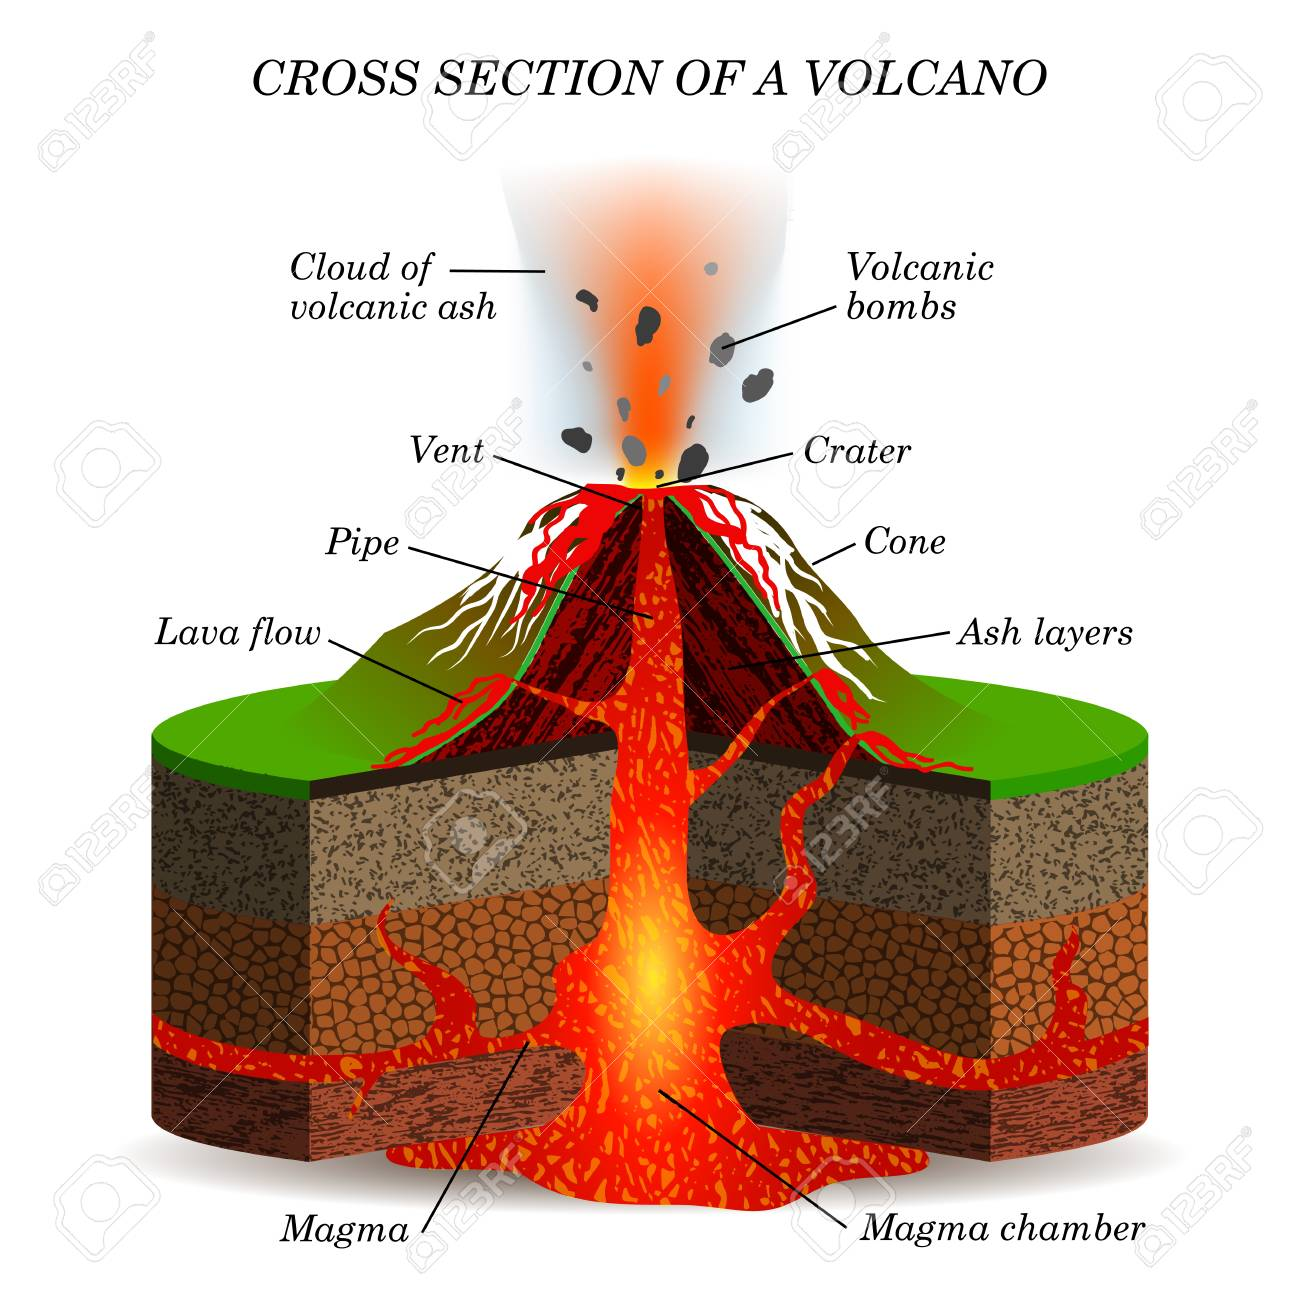 volcano diagram pipe sps audiovox wiring schematic library igneous eruption in the cross section education scientific